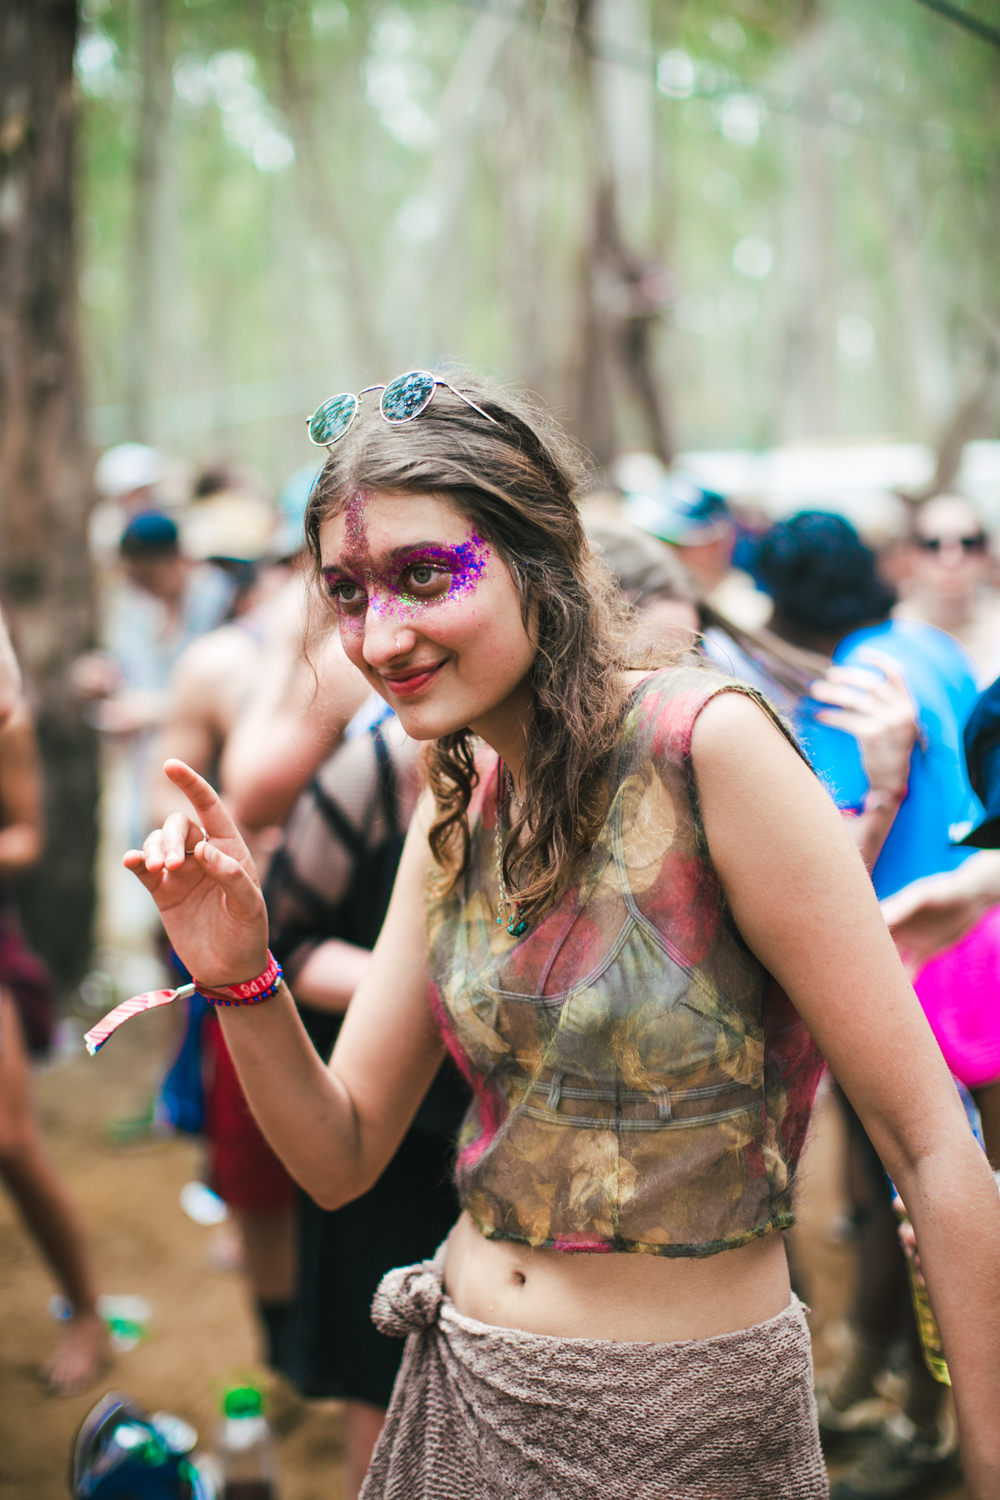 VOENA_STRAWBERRY_FIELDS_FESTIVAL_2014_PHOTOS_DOOF_AUSTRALIA-29.jpg